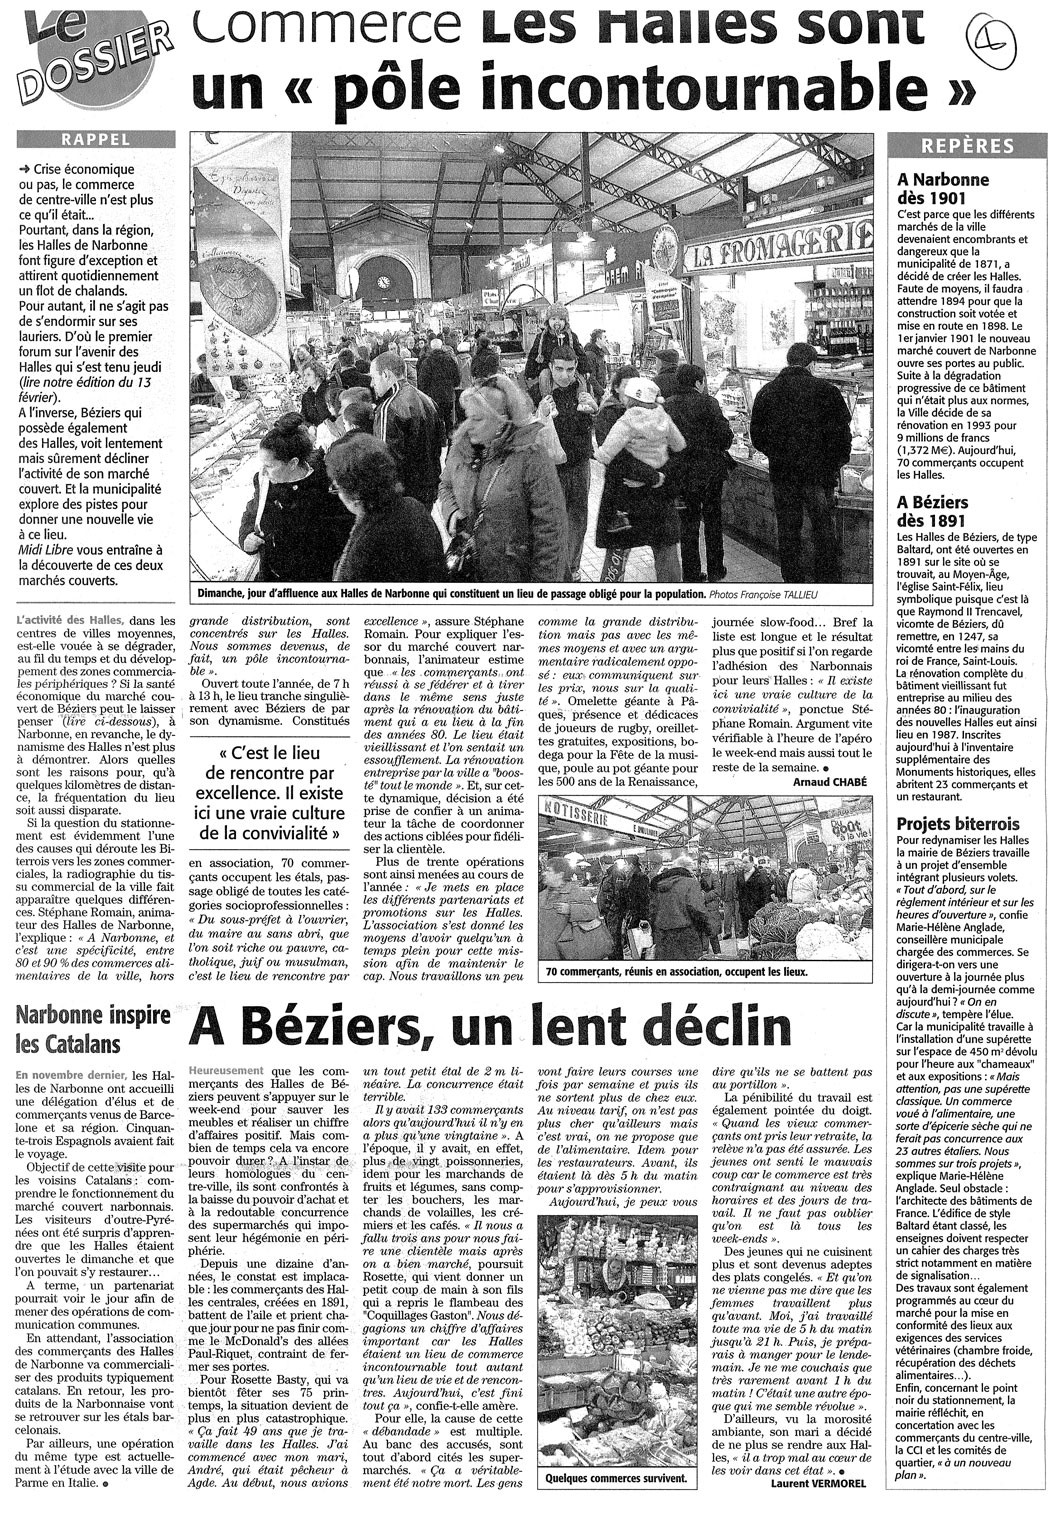 Halles_Narb-Beziers_-_Midi_Libre_16-02-09